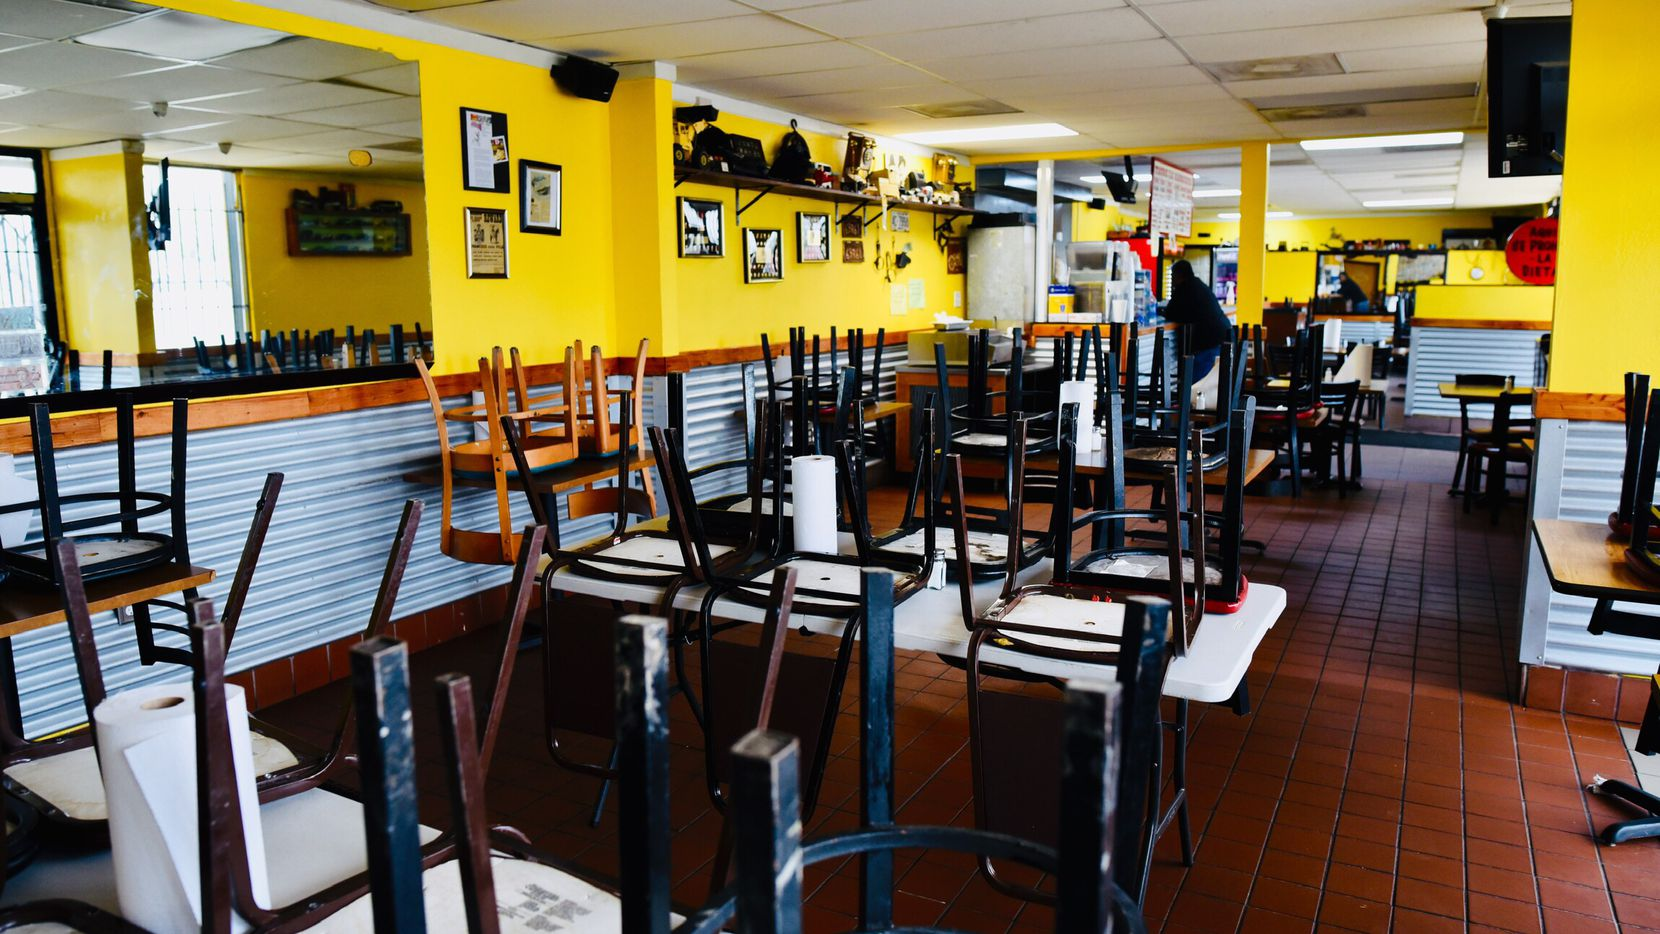 The dinning area inside Tacos la Banqueta taqueria in East Dallas is closed to combat COVID-19, Tuesday morning March 17, 2020. The restaurant remains open for take-out orders only. Dallas Mayor Eric Johnson has ordered a shut down of all bars, health clubs and entertainment venues. Ben Torres/Special Contributor